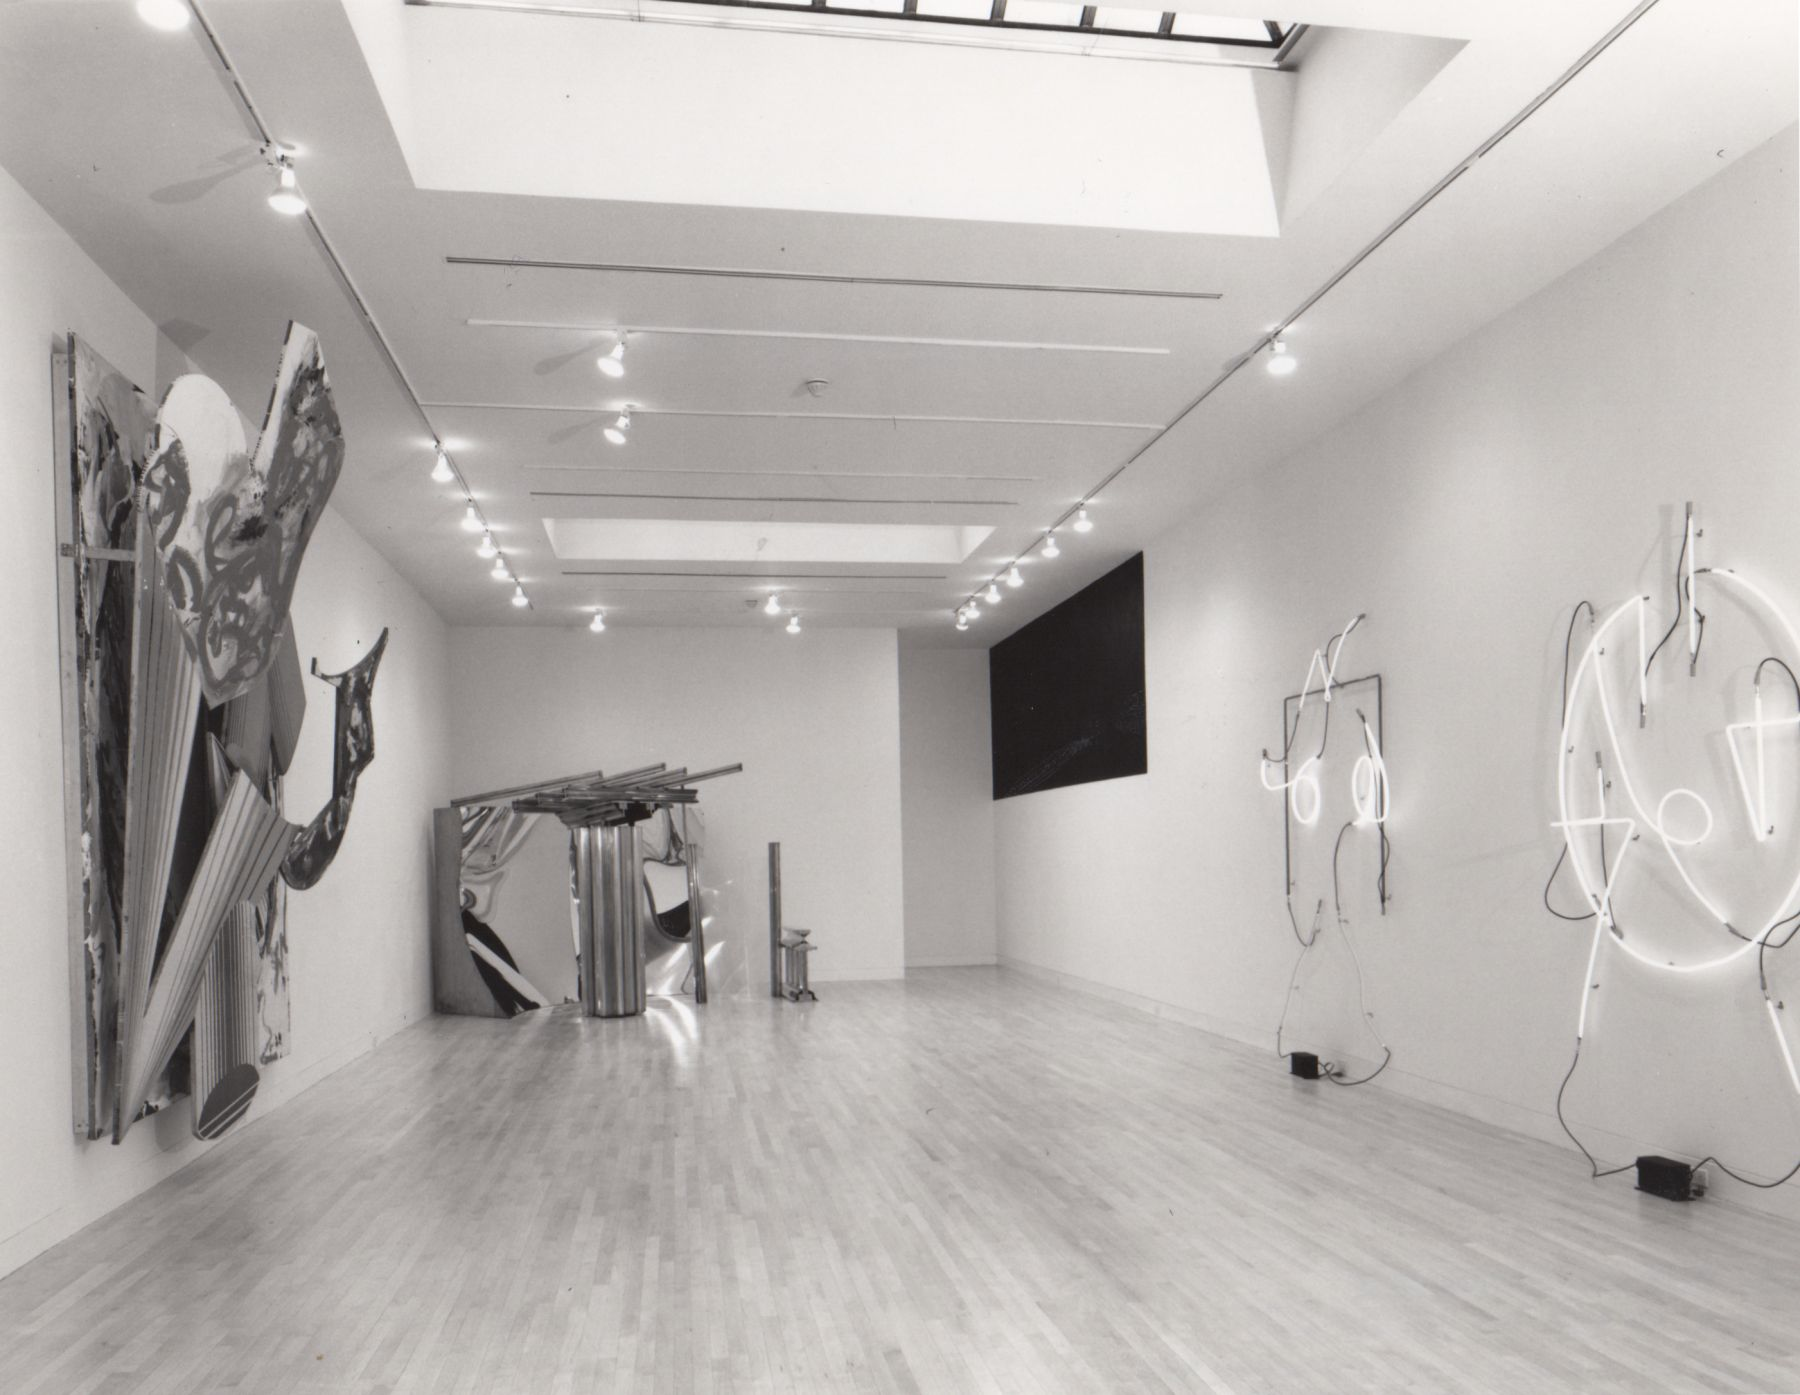 Installation view, Summer Group Show, 65 THOMPSON